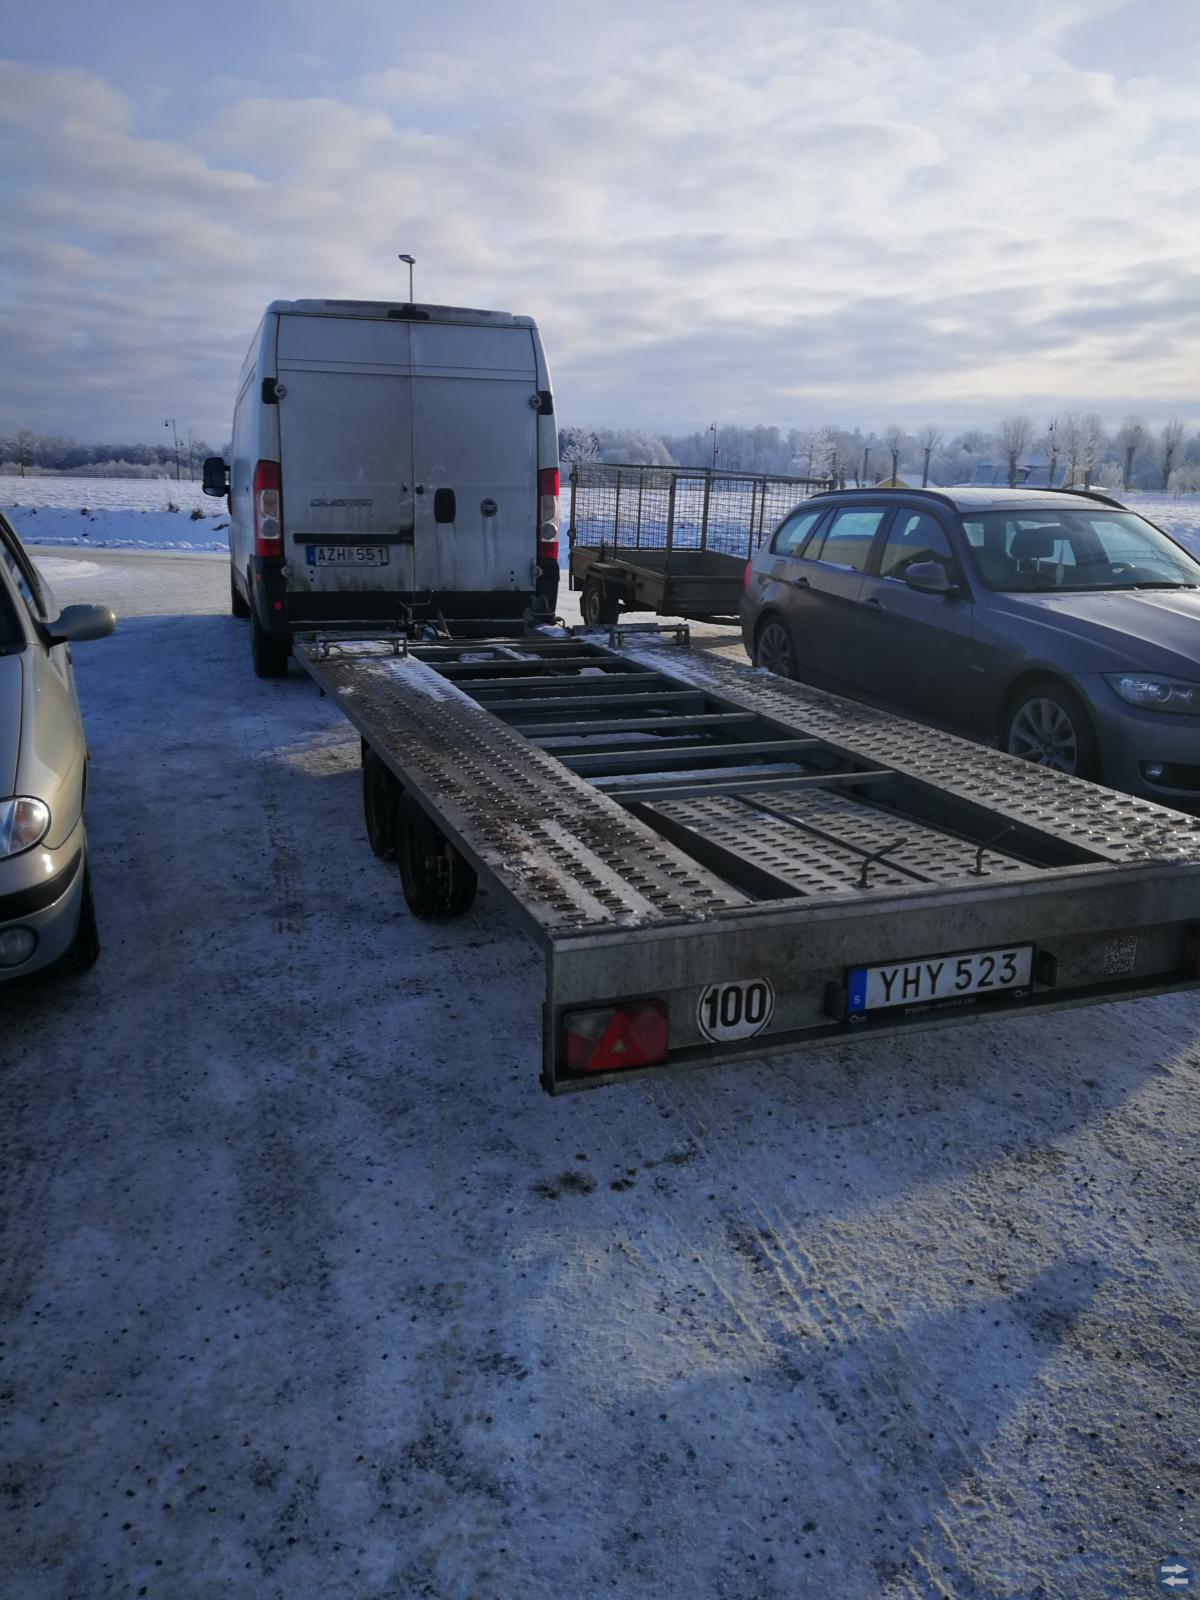 Biltransport skrotbilar